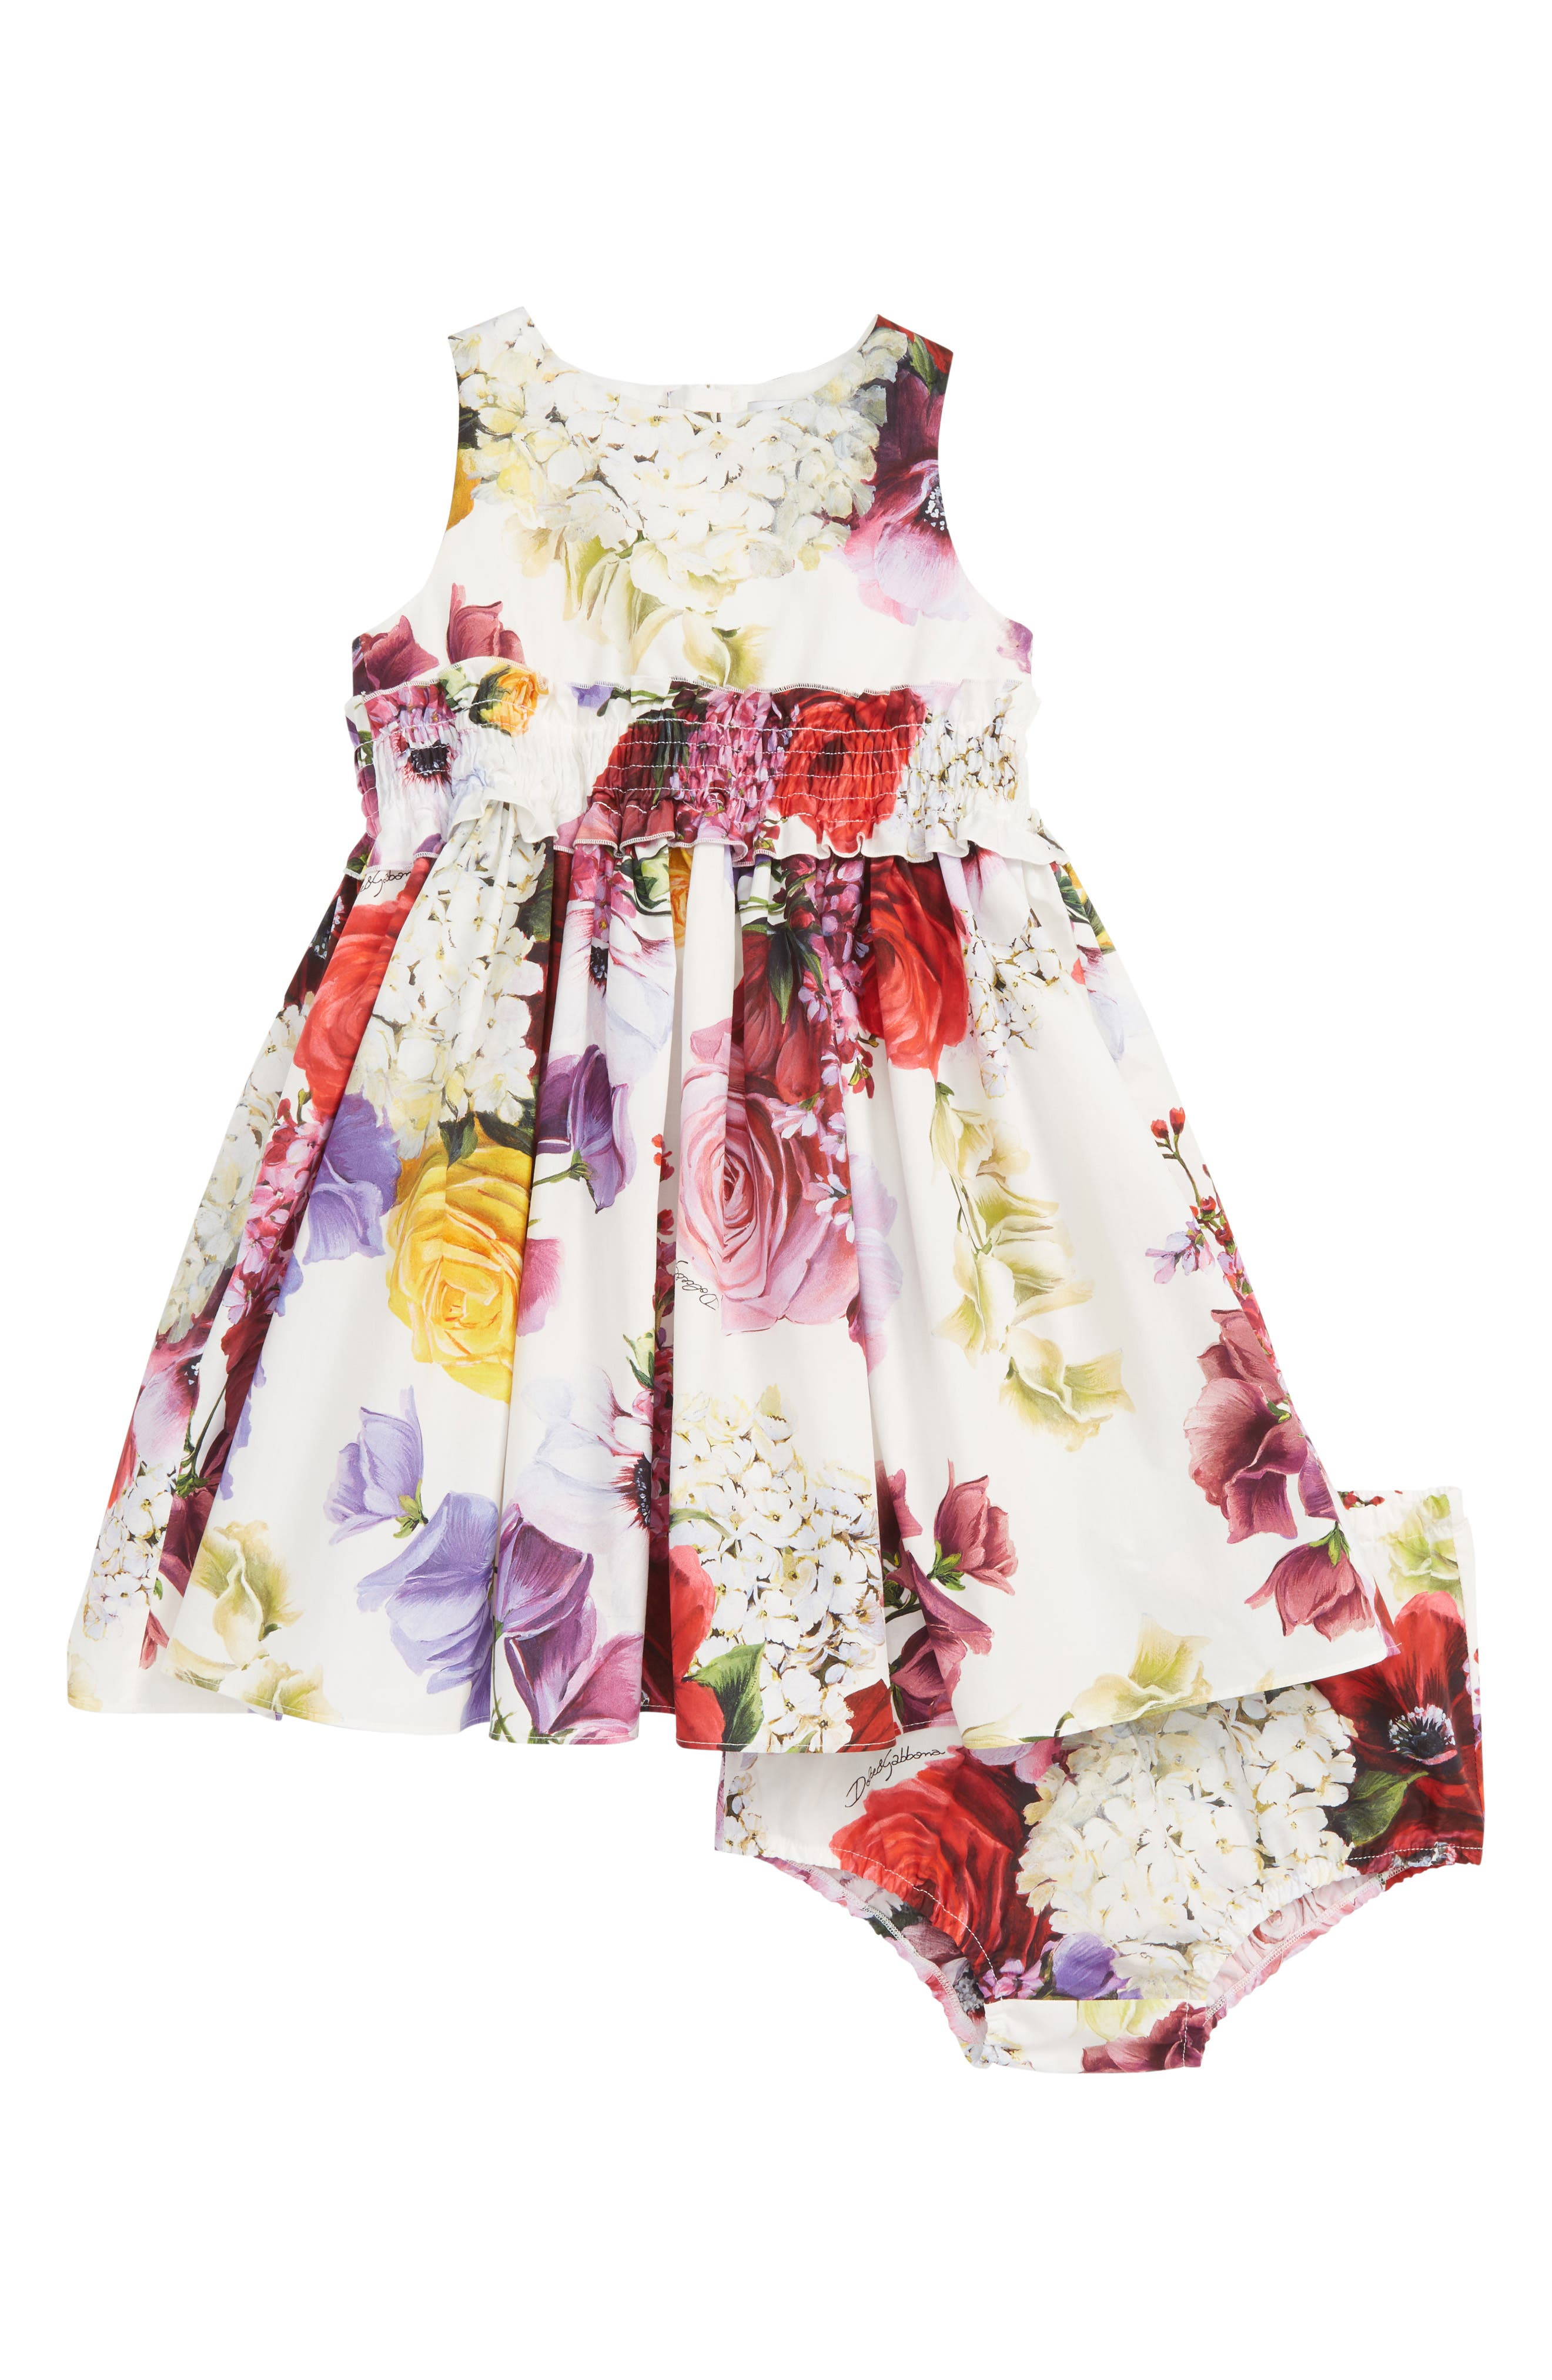 DOLCE&GABBANA, Abito Floral Fit & Flare Dress, Main thumbnail 1, color, ORTENSIE/ FIORI F NAT